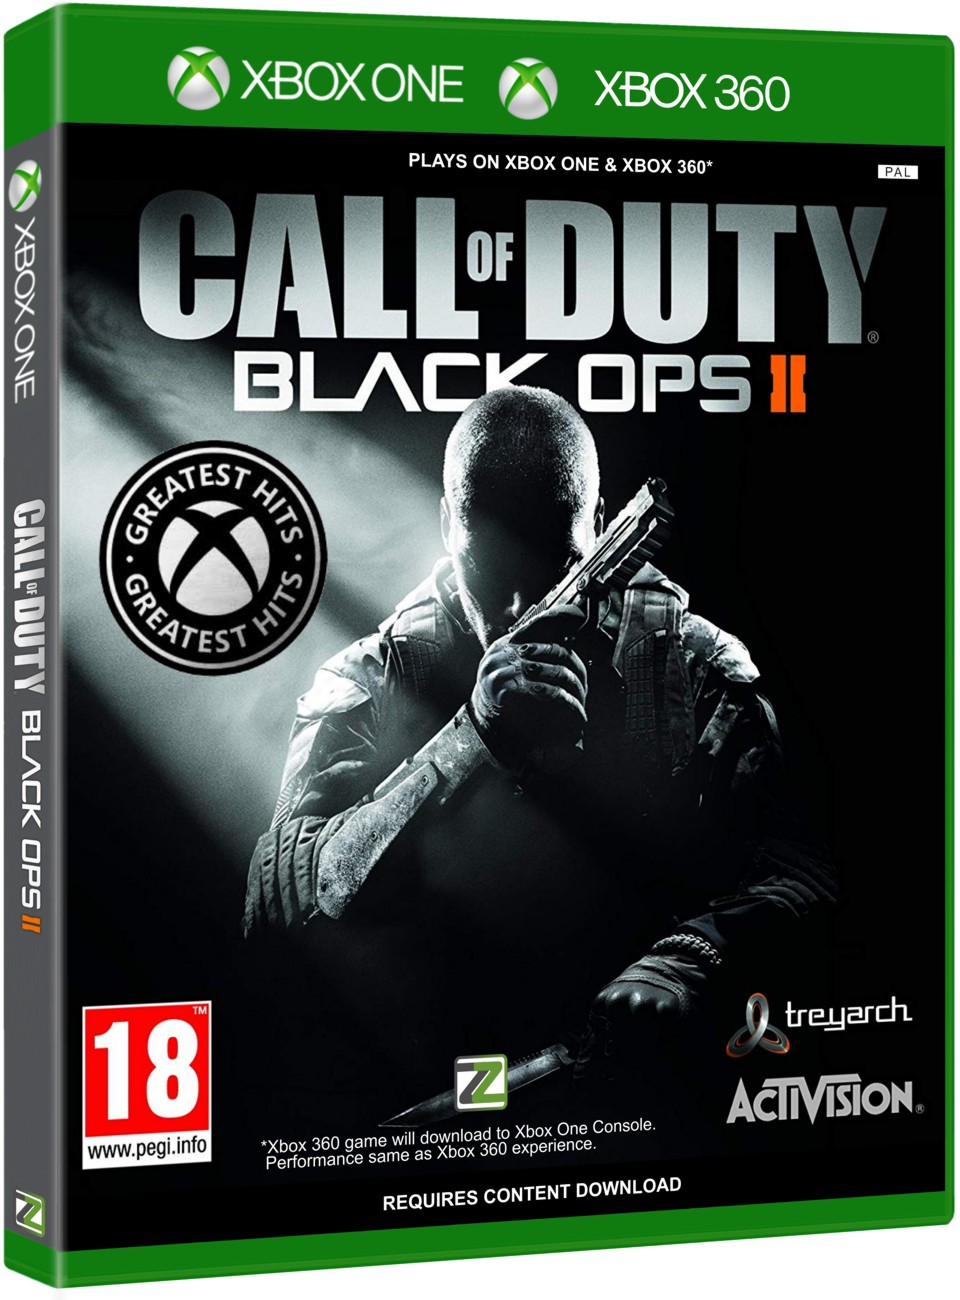 CALL OF DUTY BLACK OPS 2 - XONE/X360